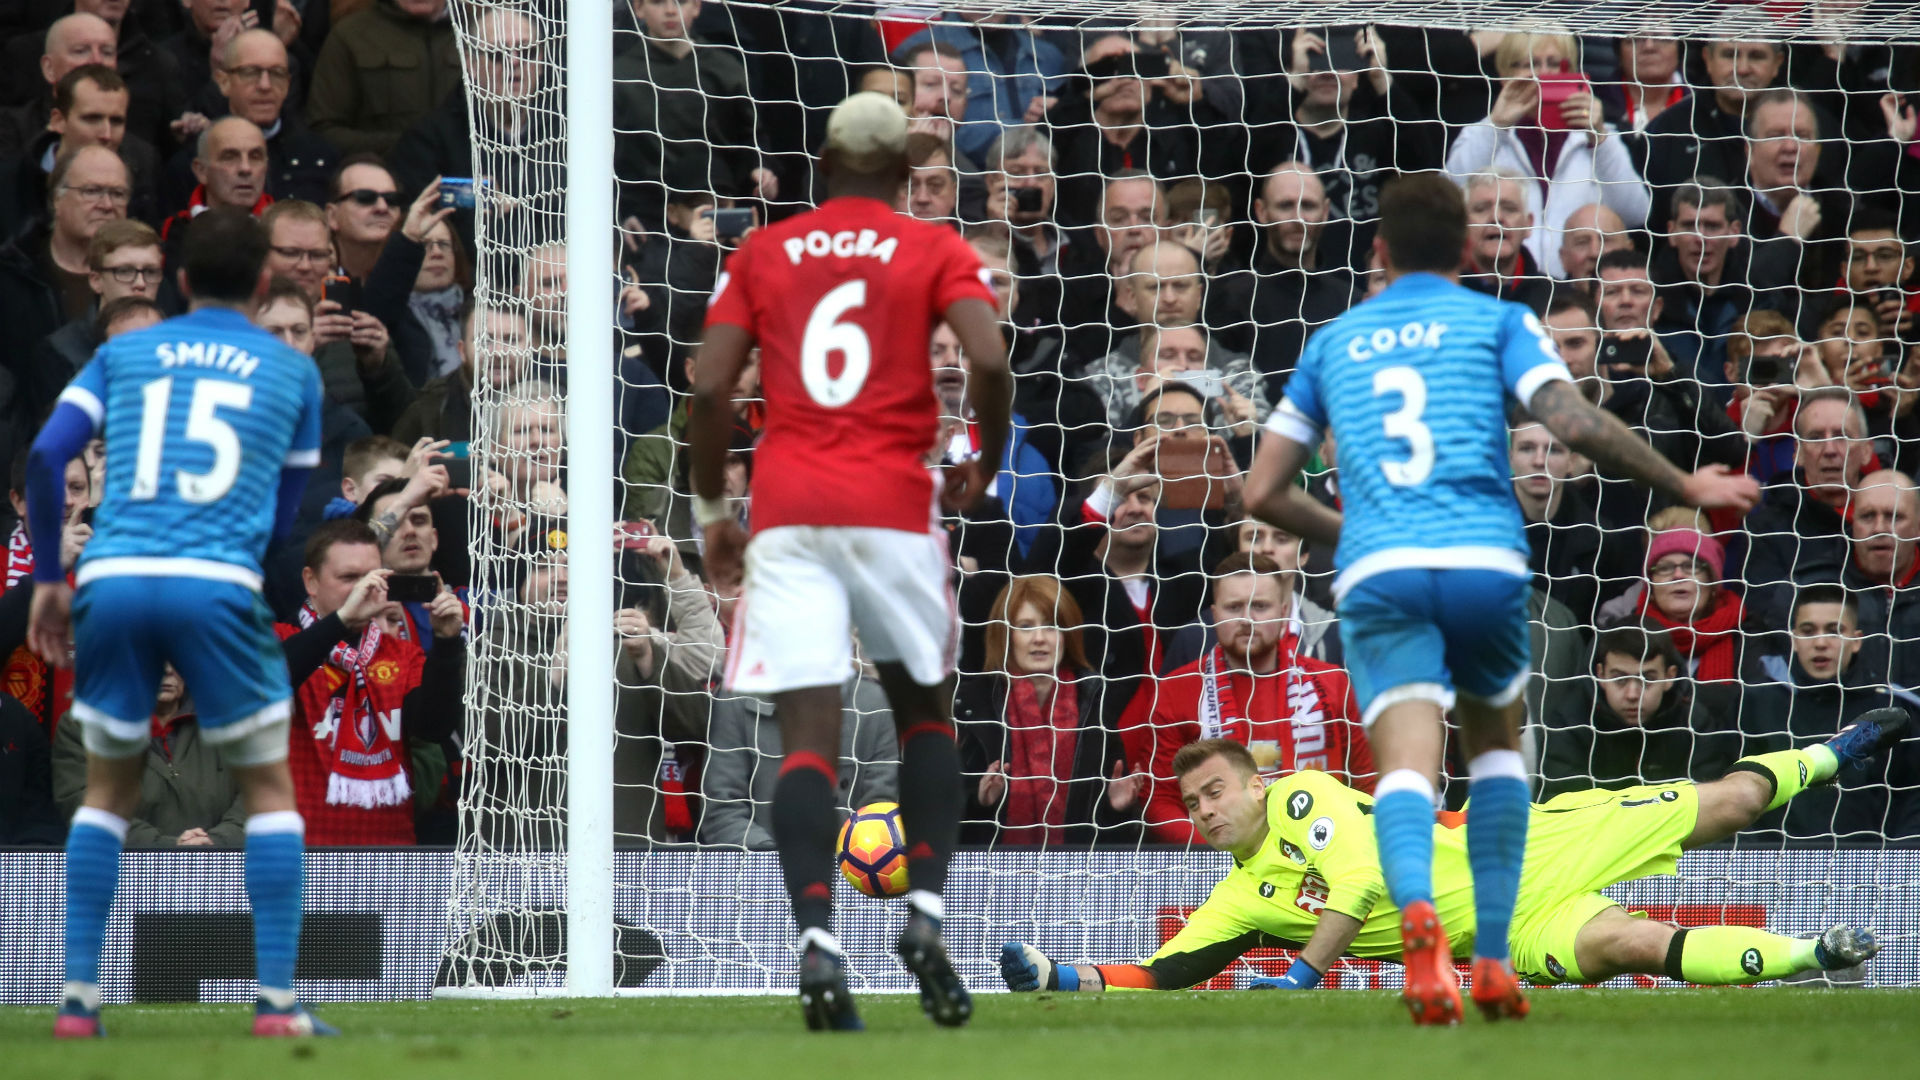 Arthur Boruc Premier League Manchester United v Bournemouth